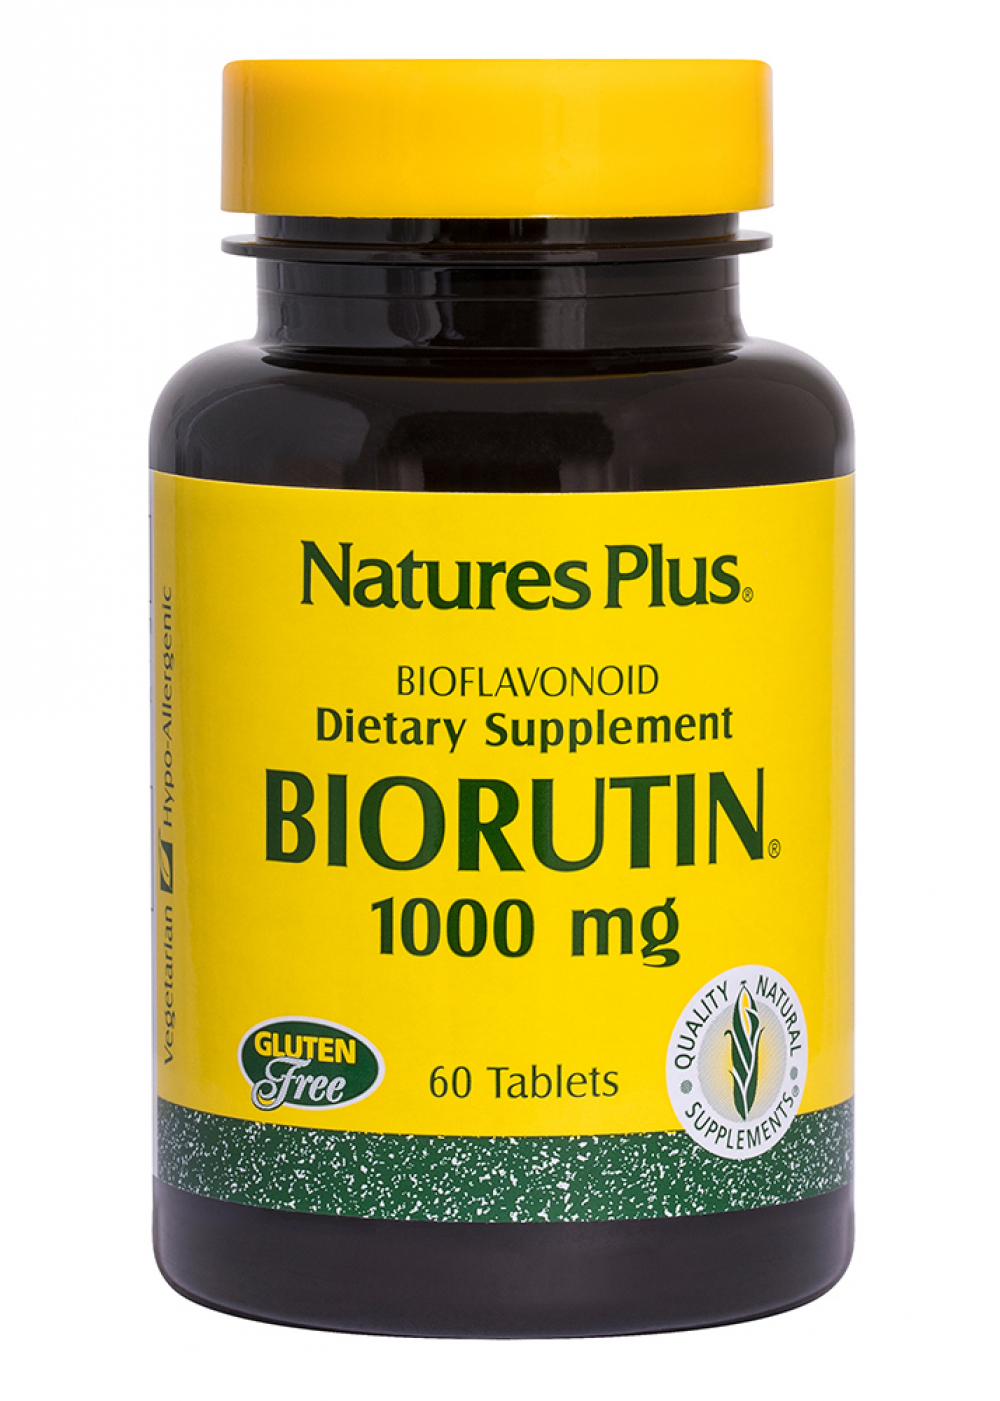 Natures Plus Biorutin 1000mg 60 Tabletten (86,8g)